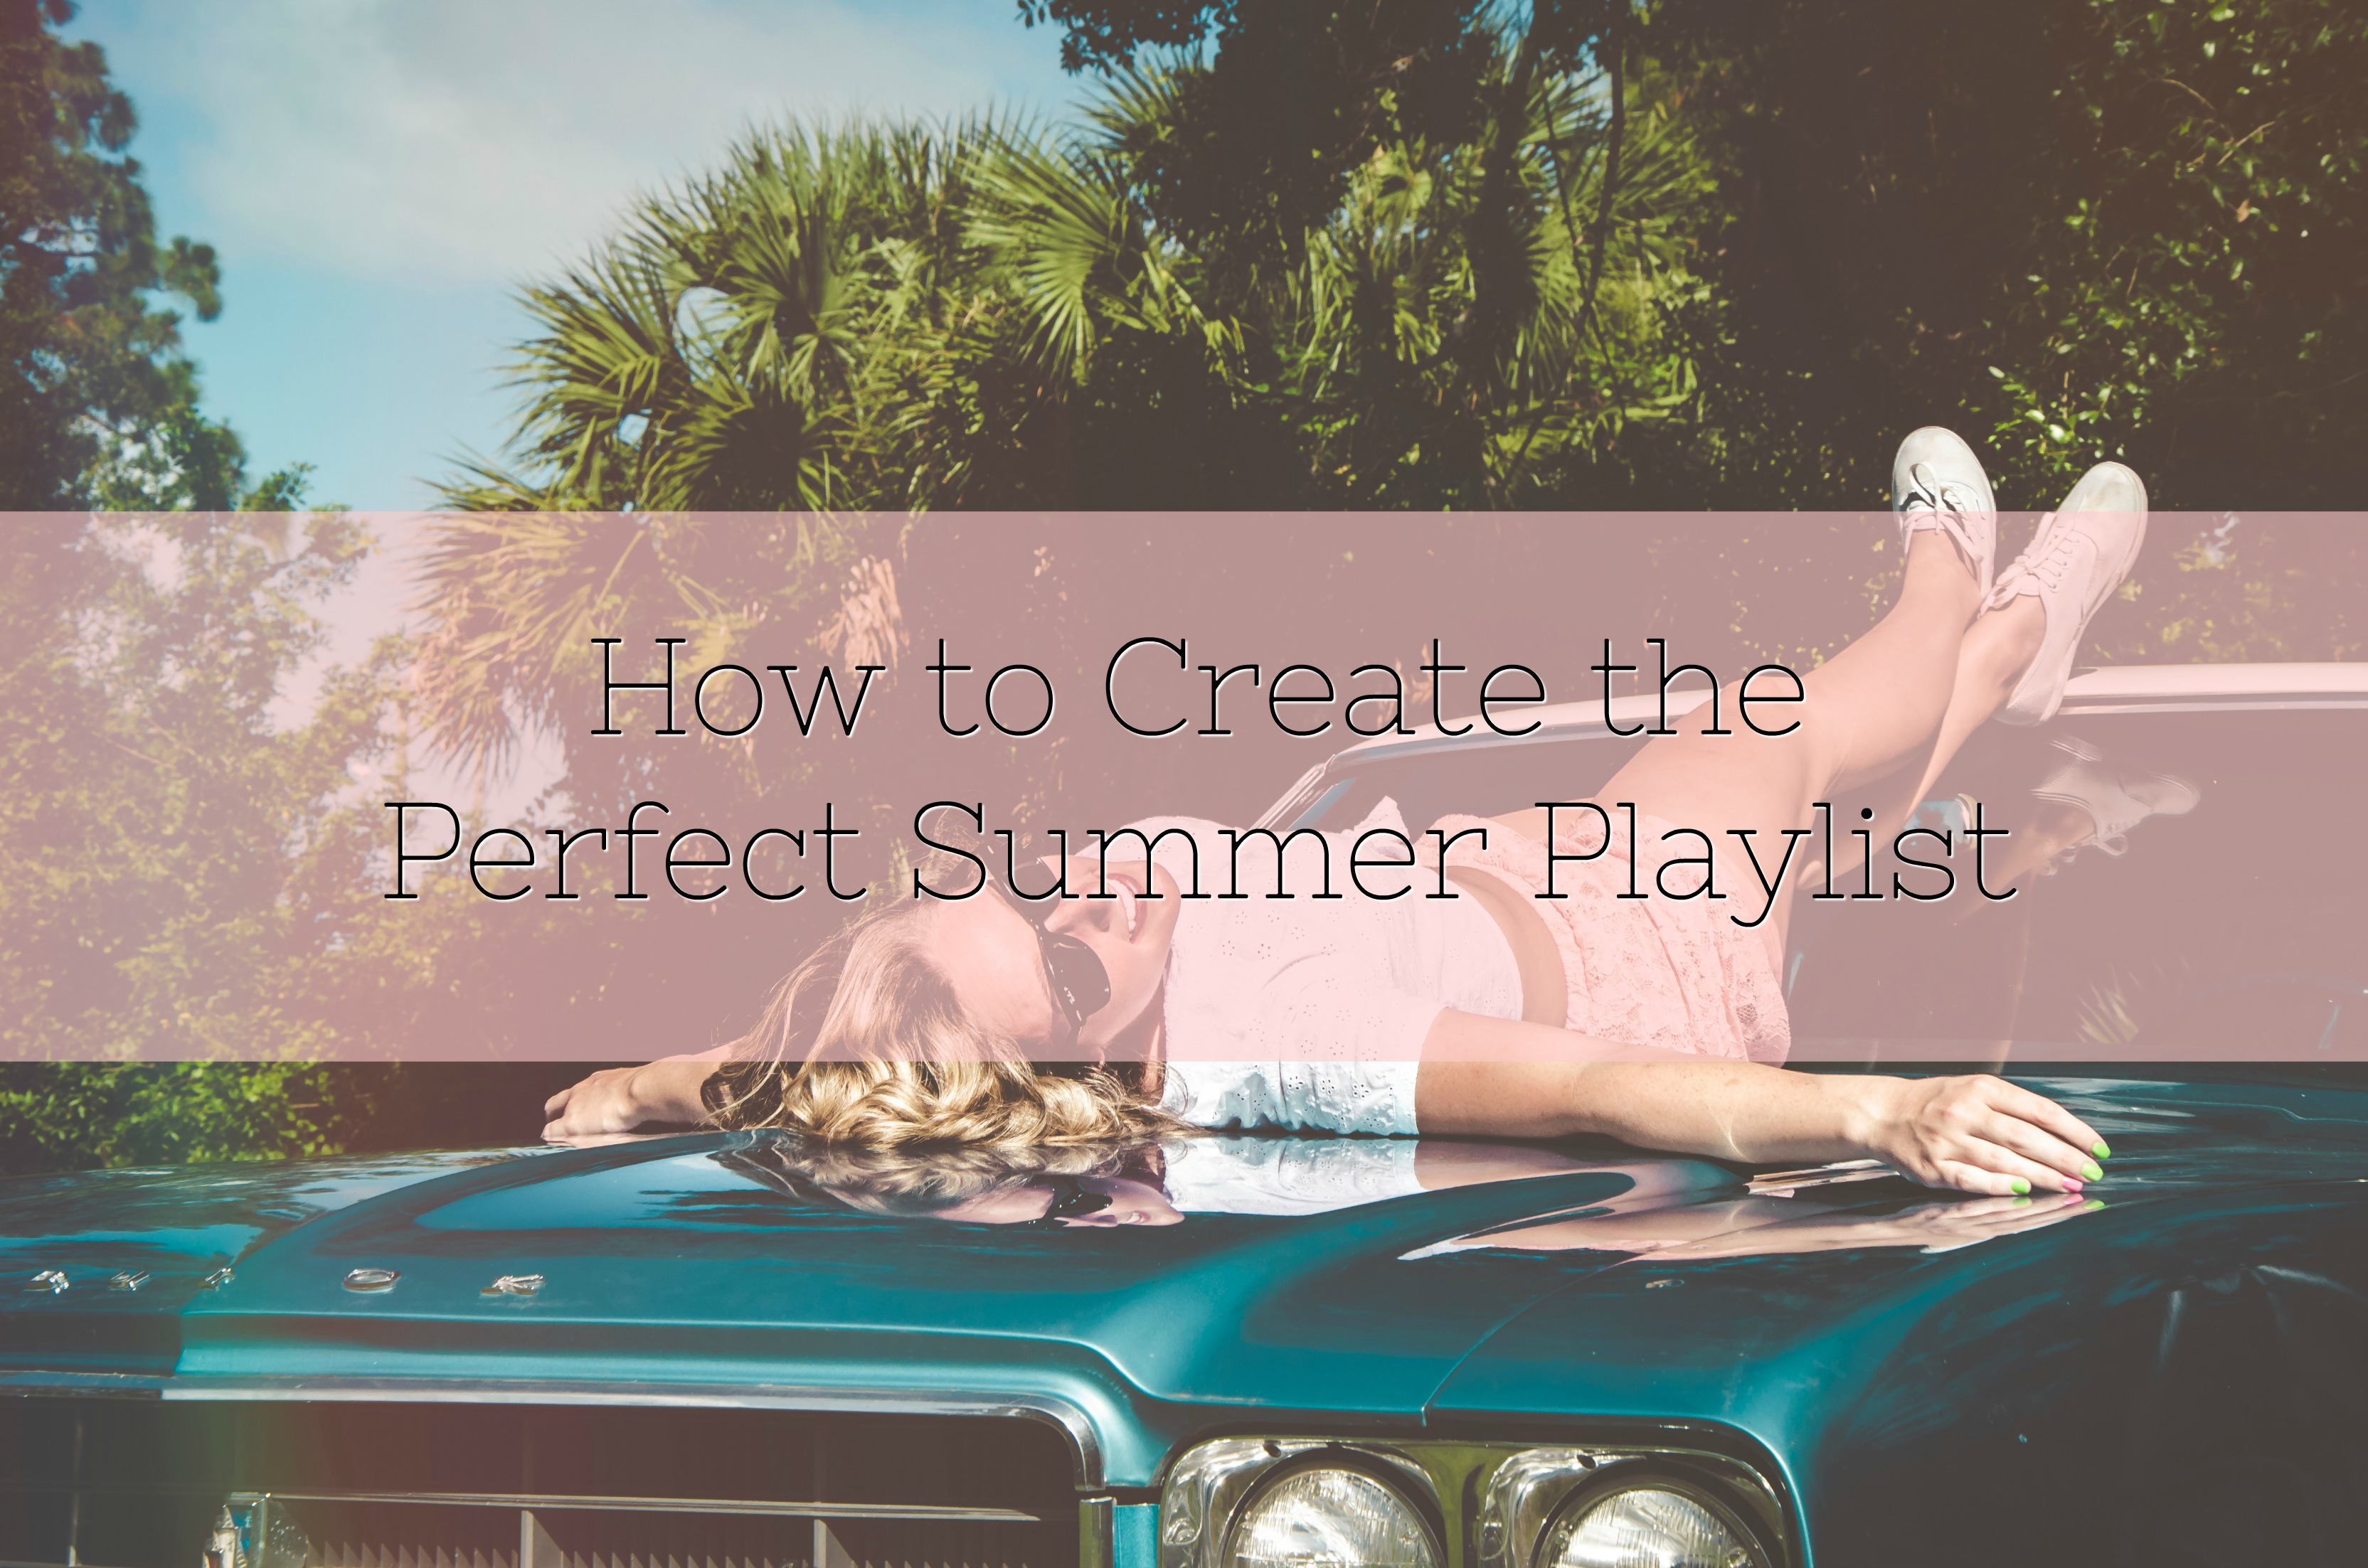 How to Create the Perfect Summer Playlist